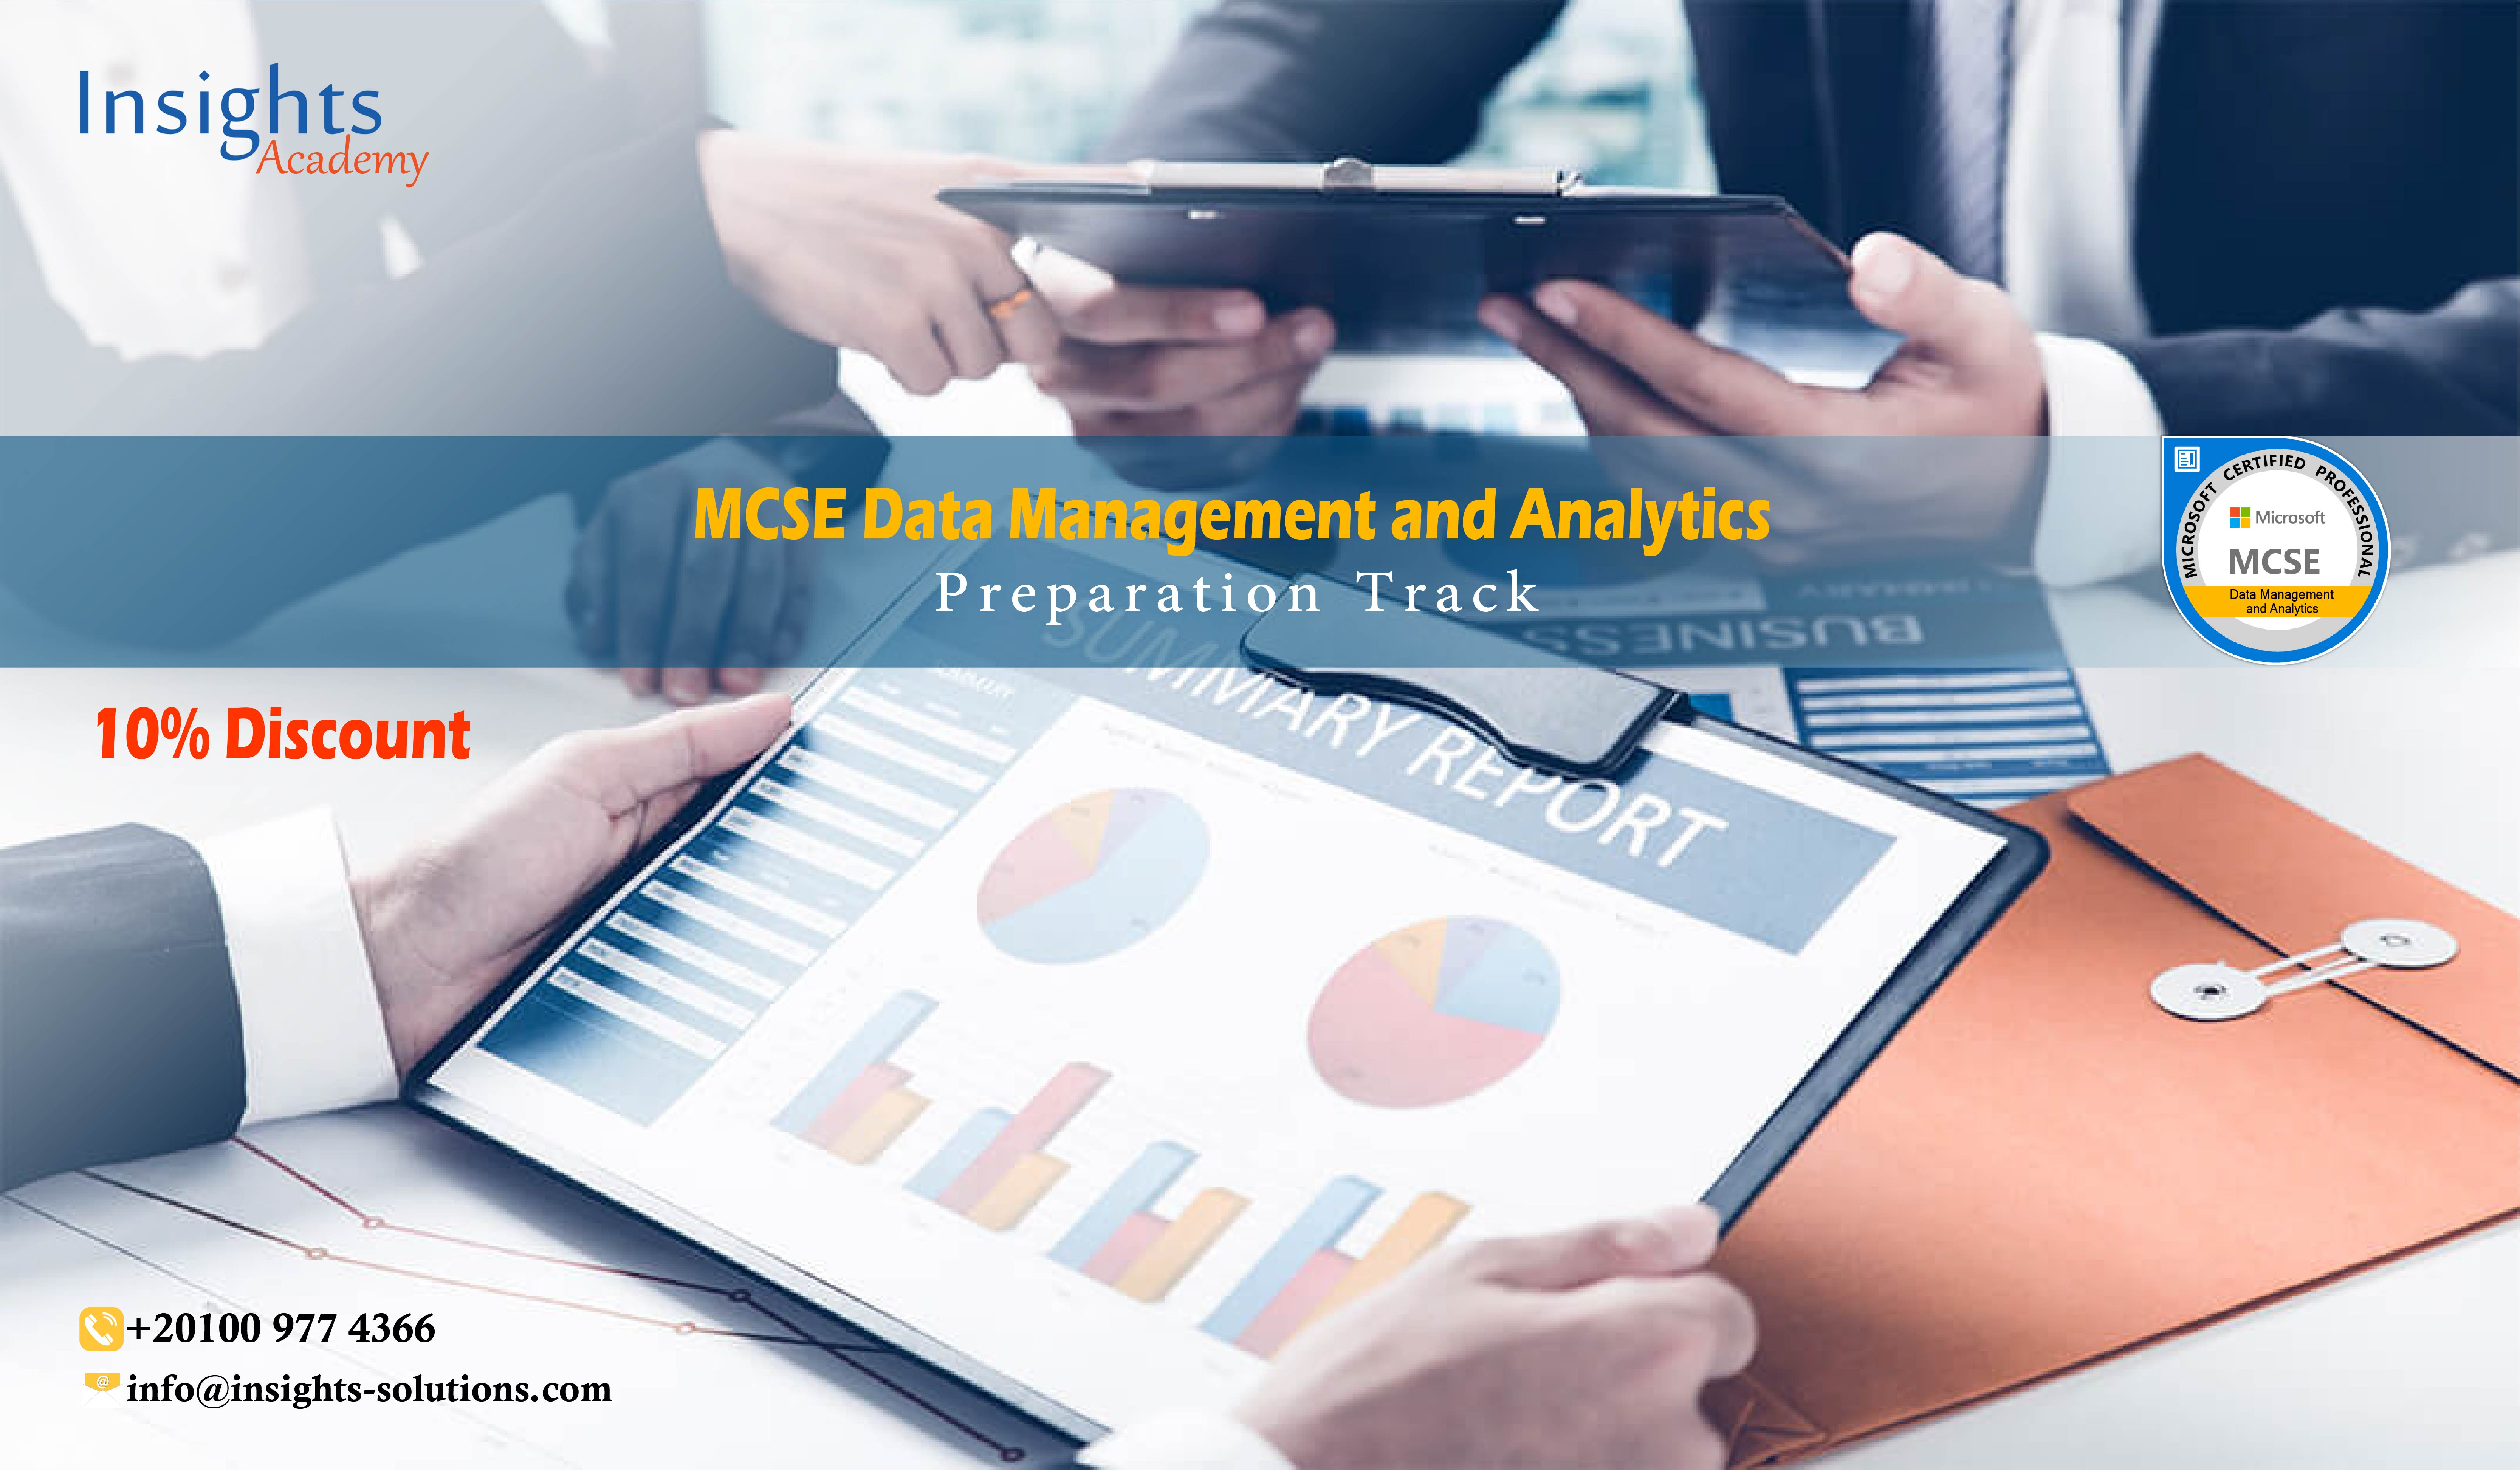 MCSE Data Management and Analytics | Preparation Track (72 Hrs. ) 2